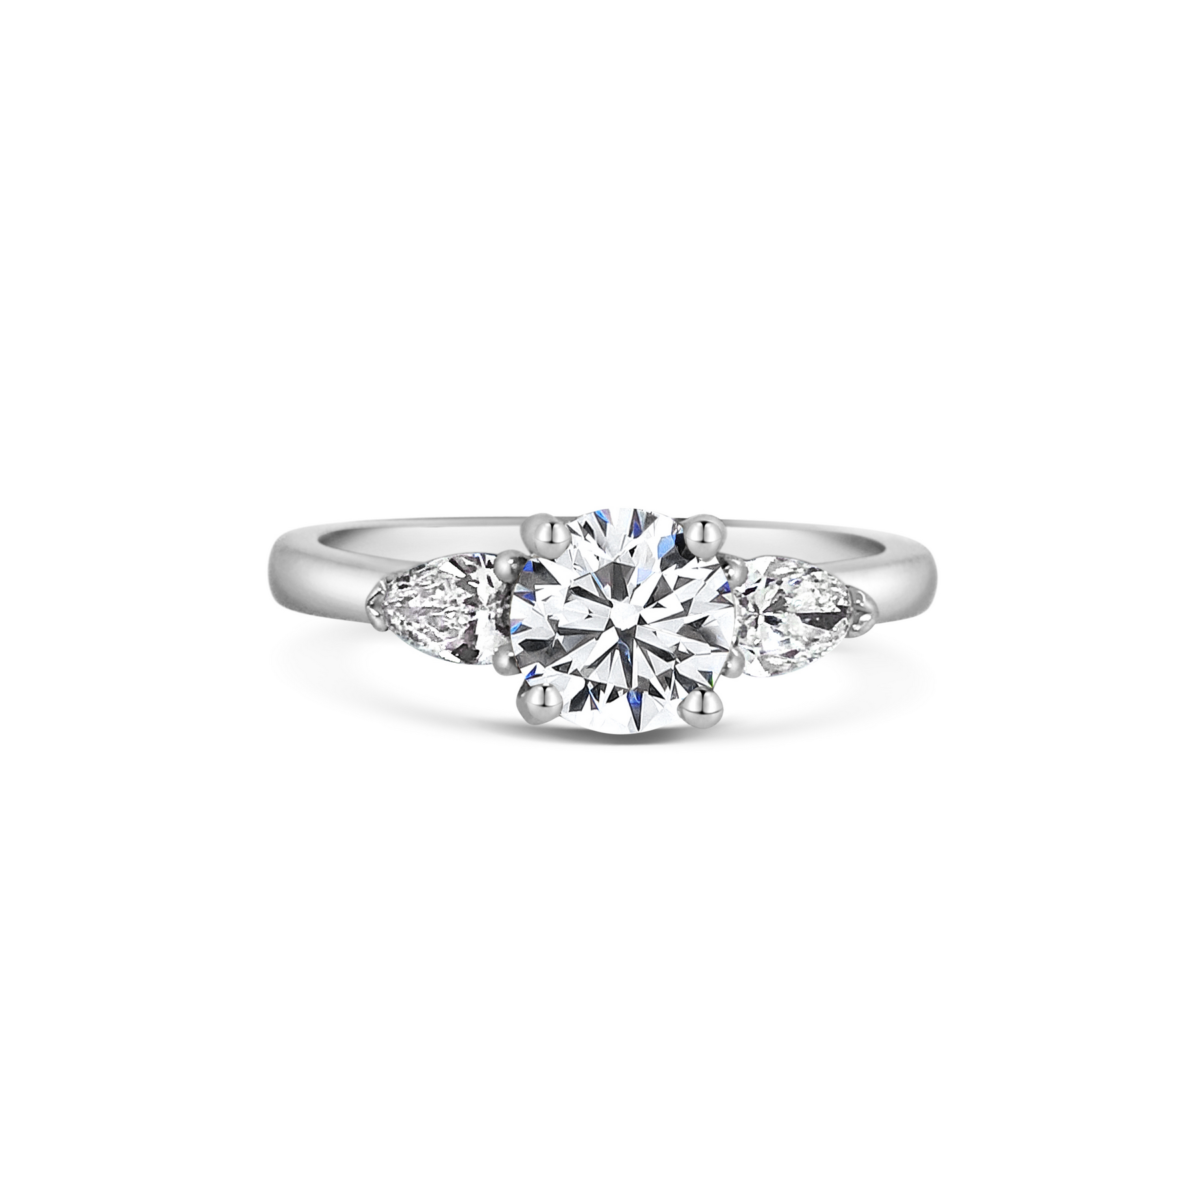 Elsa Round Three Stone Pear Diamond Engagement Ring Front View